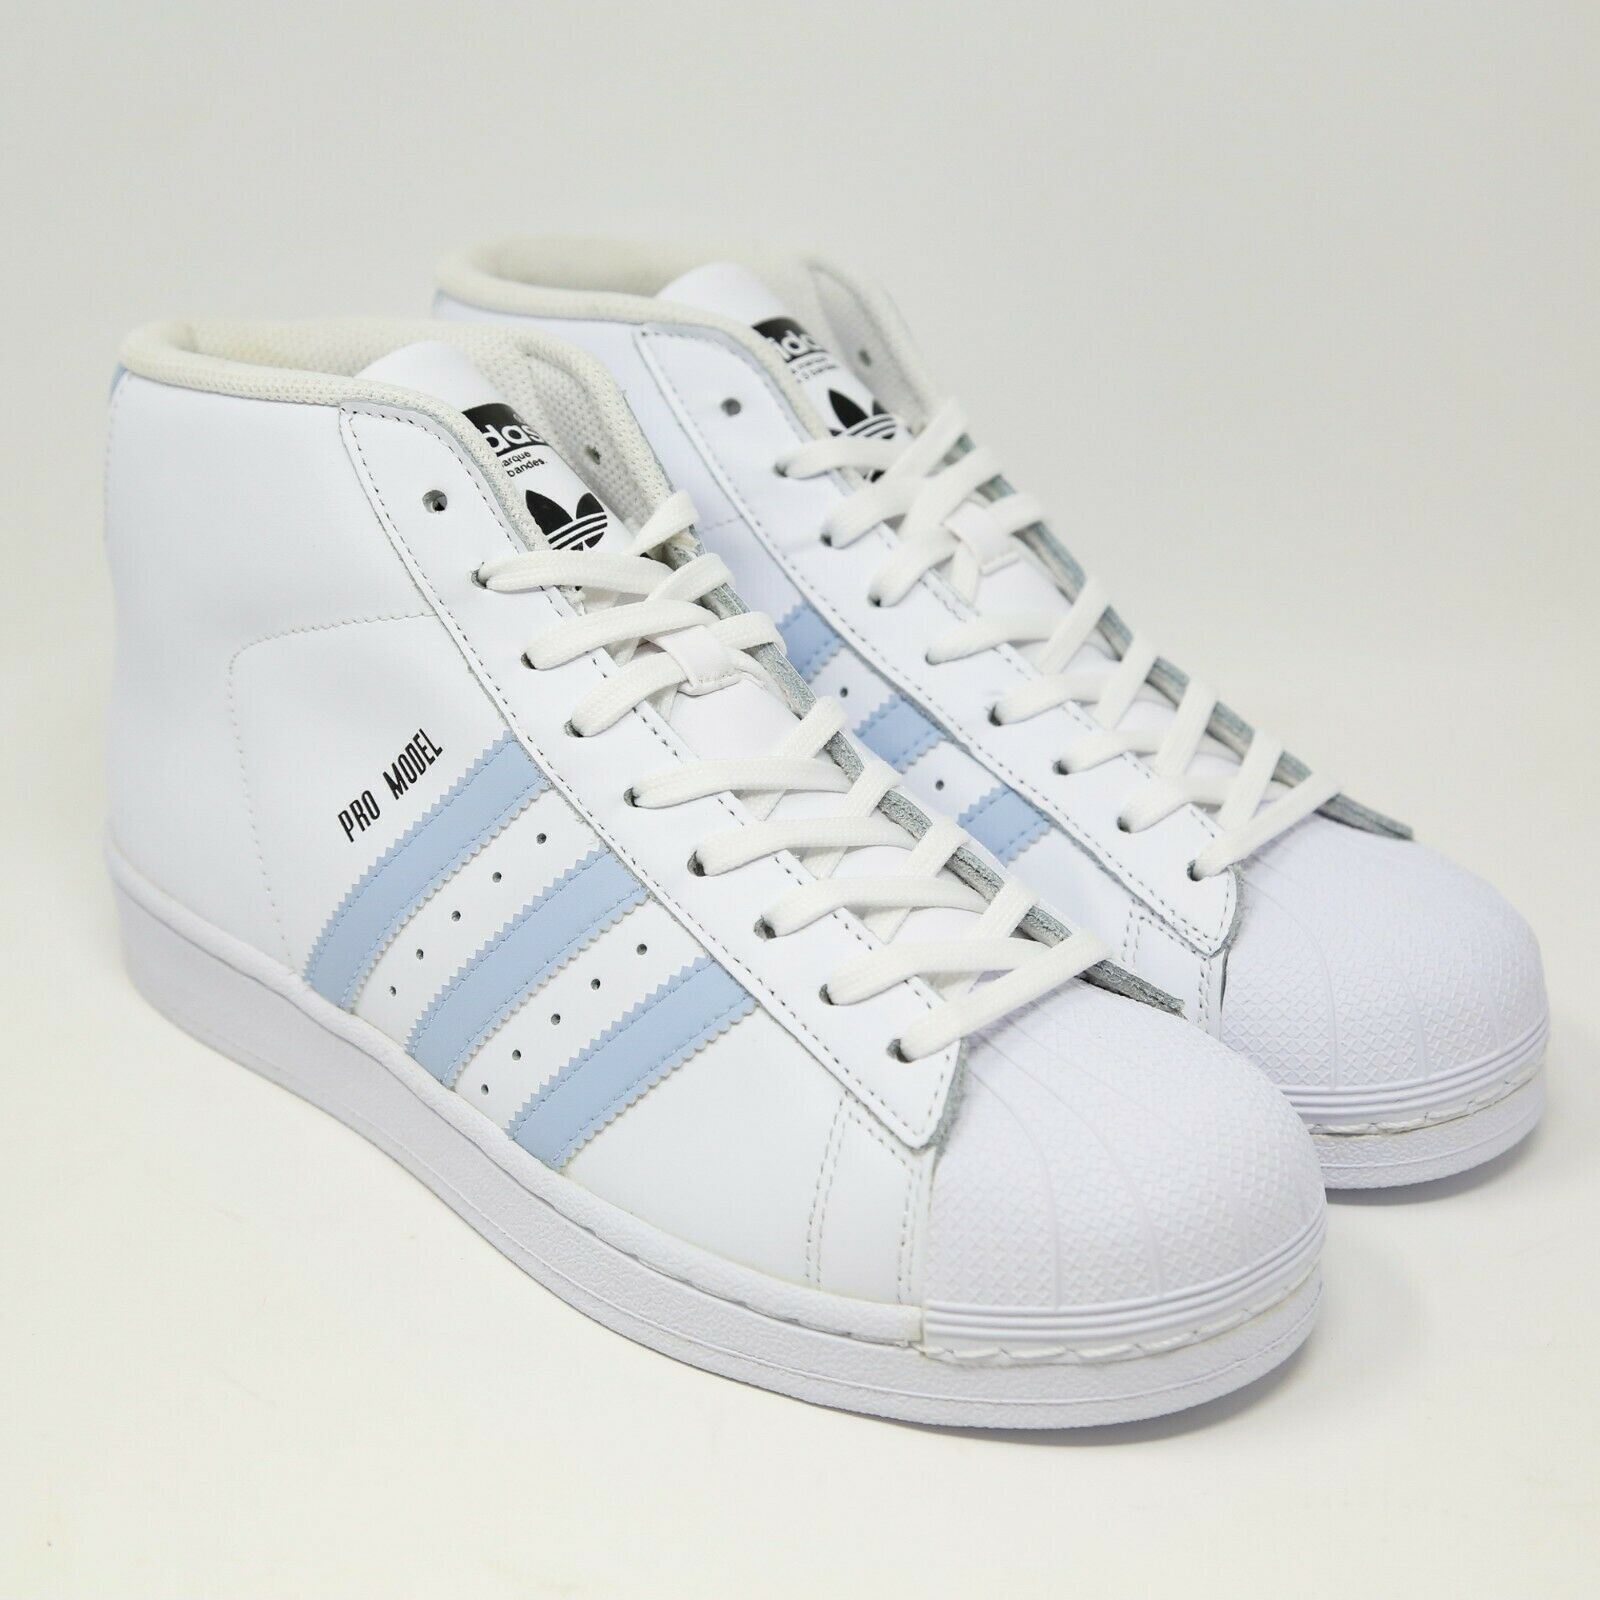 Primary image for Adidas pro Model Guscio Punta Bianco Facile Blu BW1341 Basket UNC Carolina Rétro